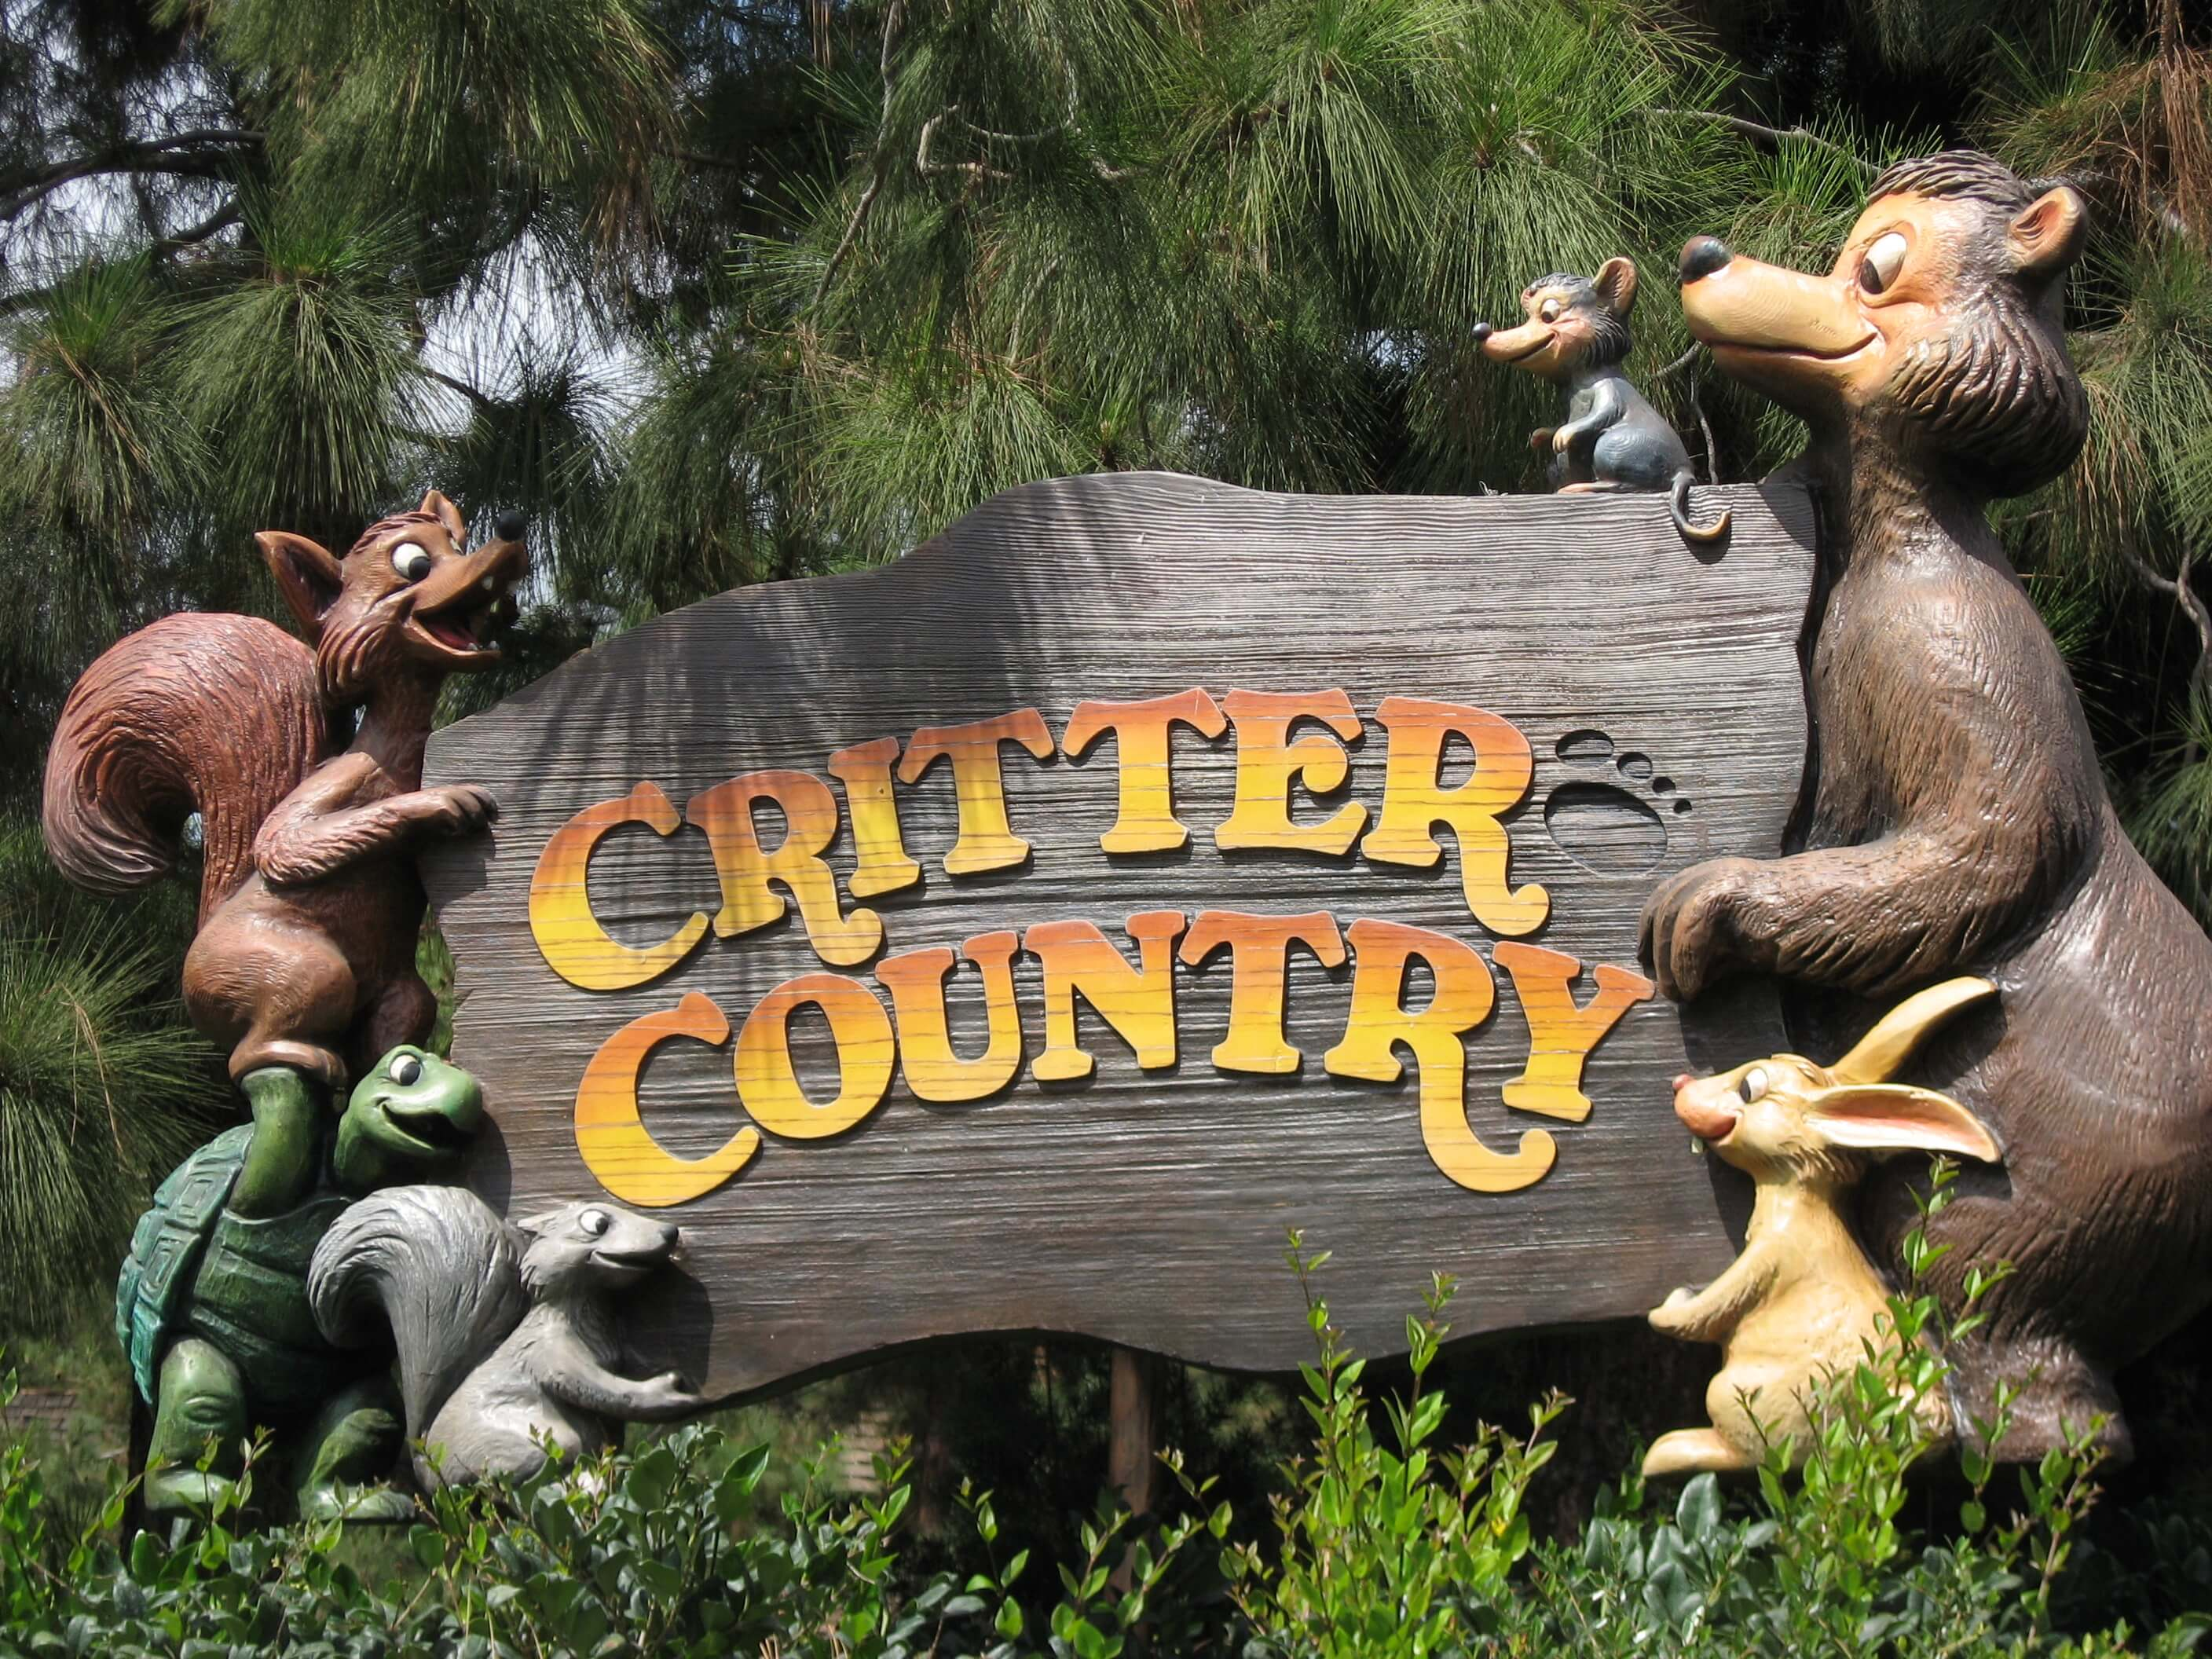 Critter Country sign Things to do in disneyland